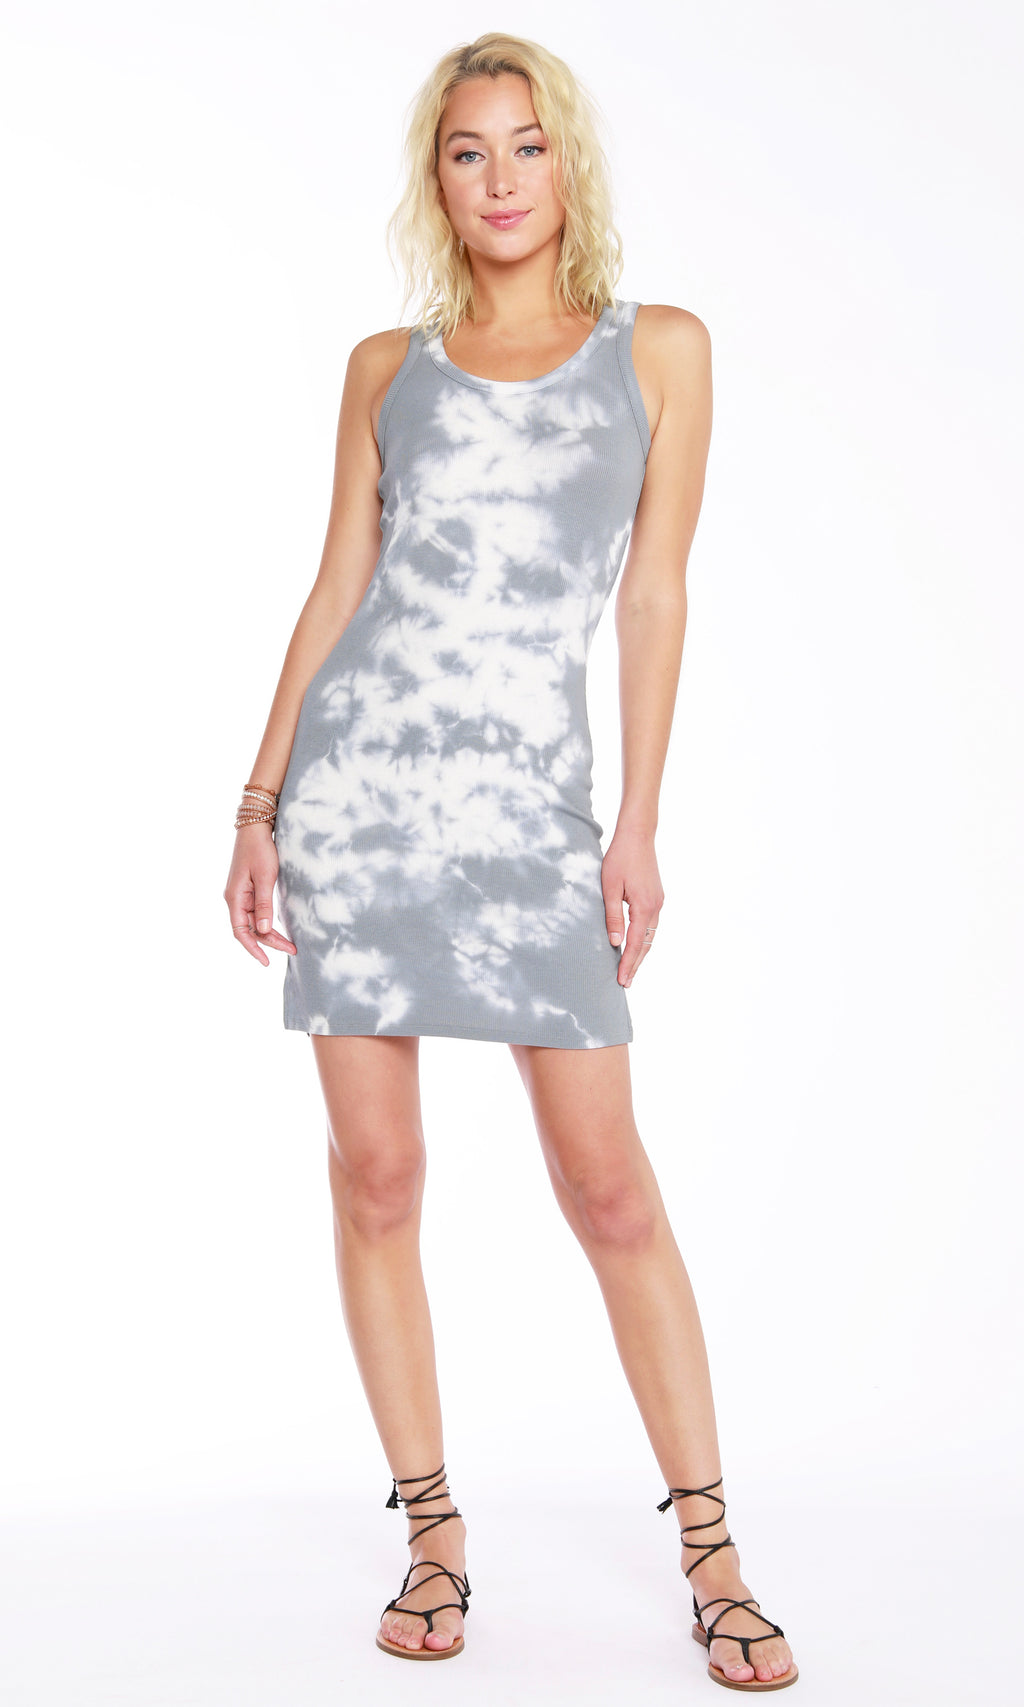 Bobi Overcast/White Hi Lo Tank Dress